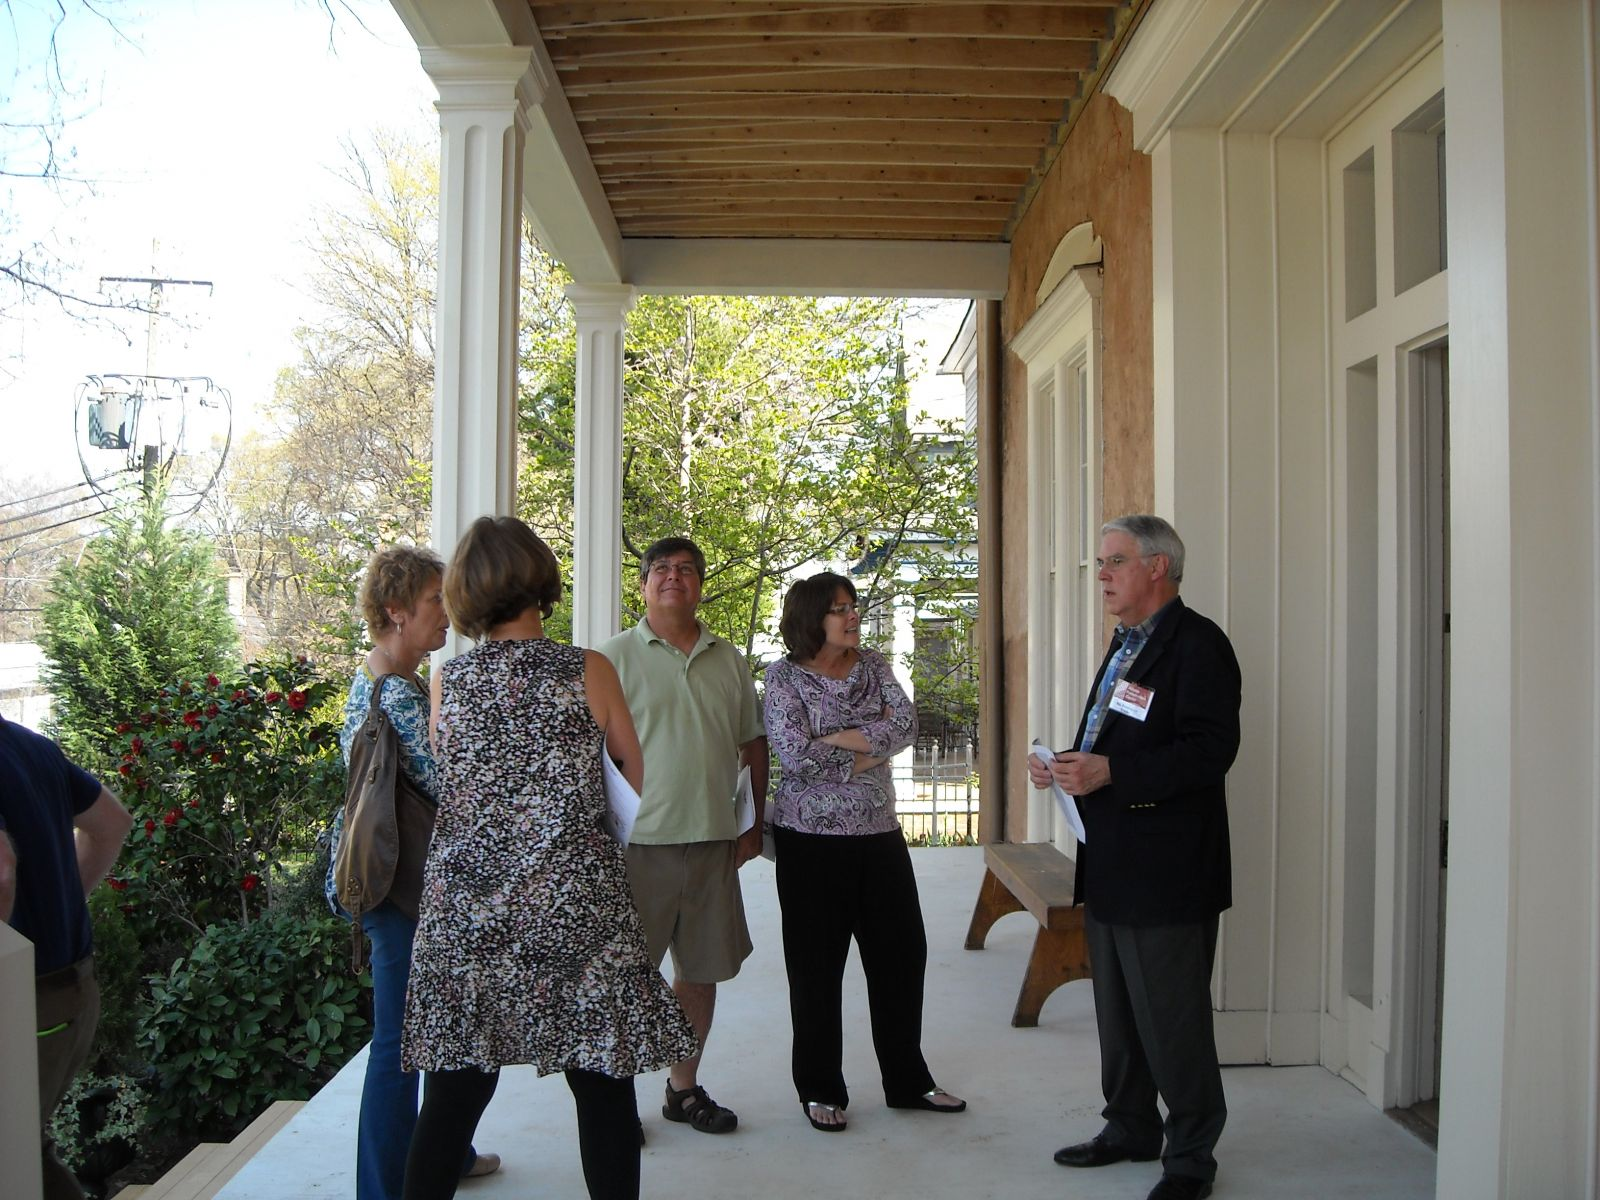 Trustee, Bill Pennington, welcomes guests to the LP Grant Mansion.